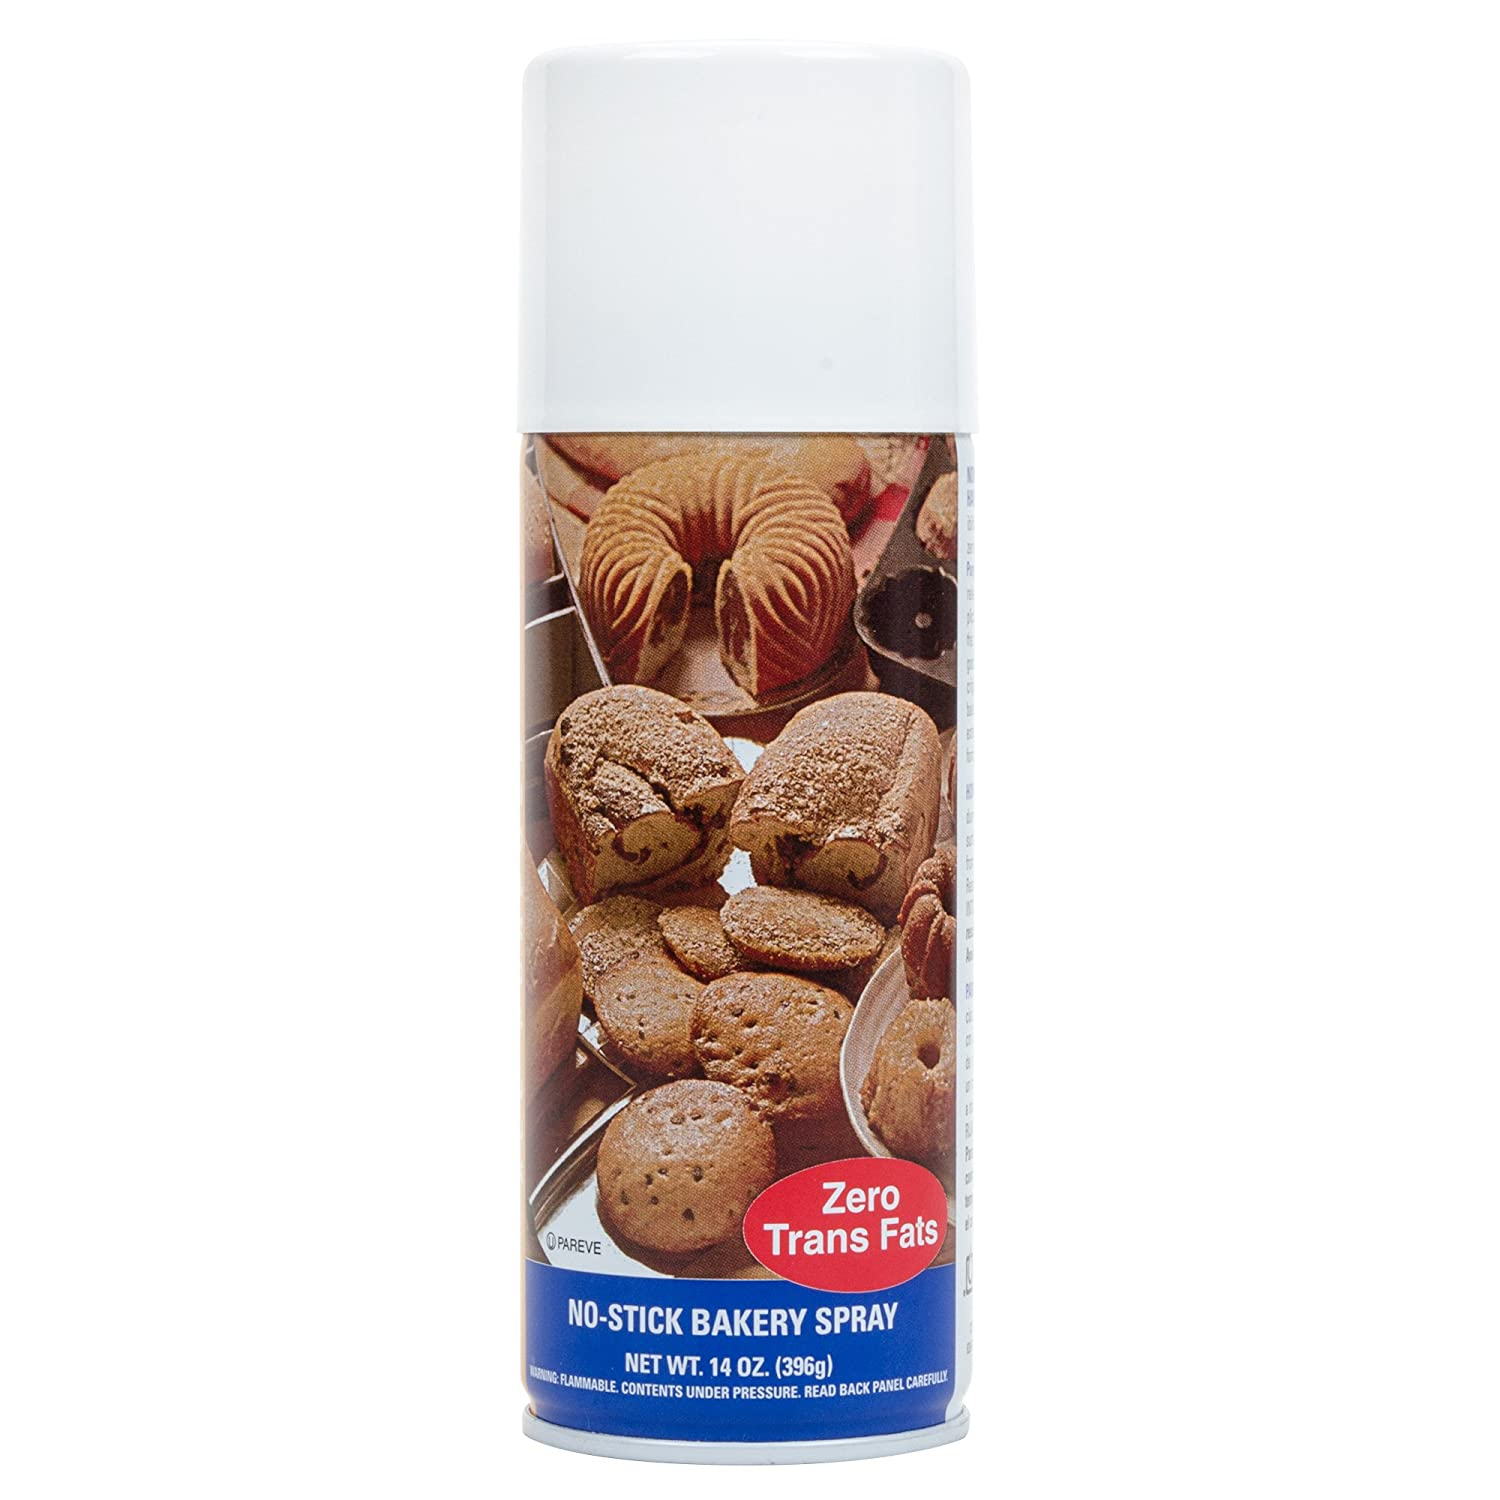 Bak-Klene ZT All Purpose Release Spray - Bakers Joy Baking Spray, Grill Nonstick Spray for Cooking, Pan Oil Spray, High Heat Cooking Spray to Keep Food Prom Sticking to Your Pans, 14oz, pack of 3